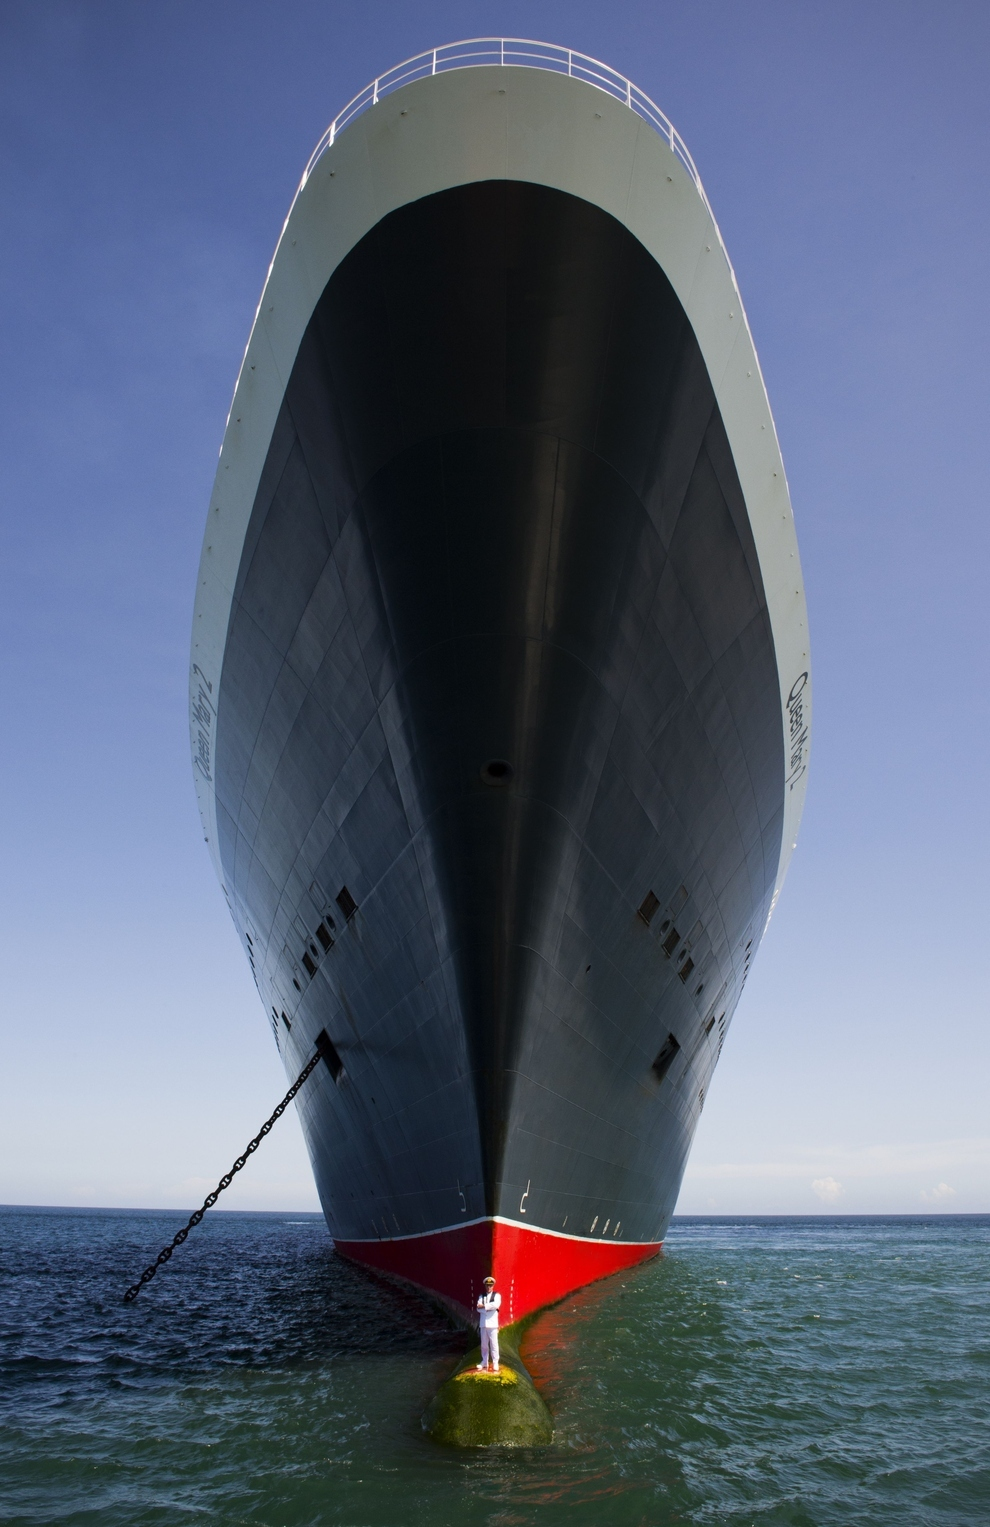 captain-cruise-ship-4